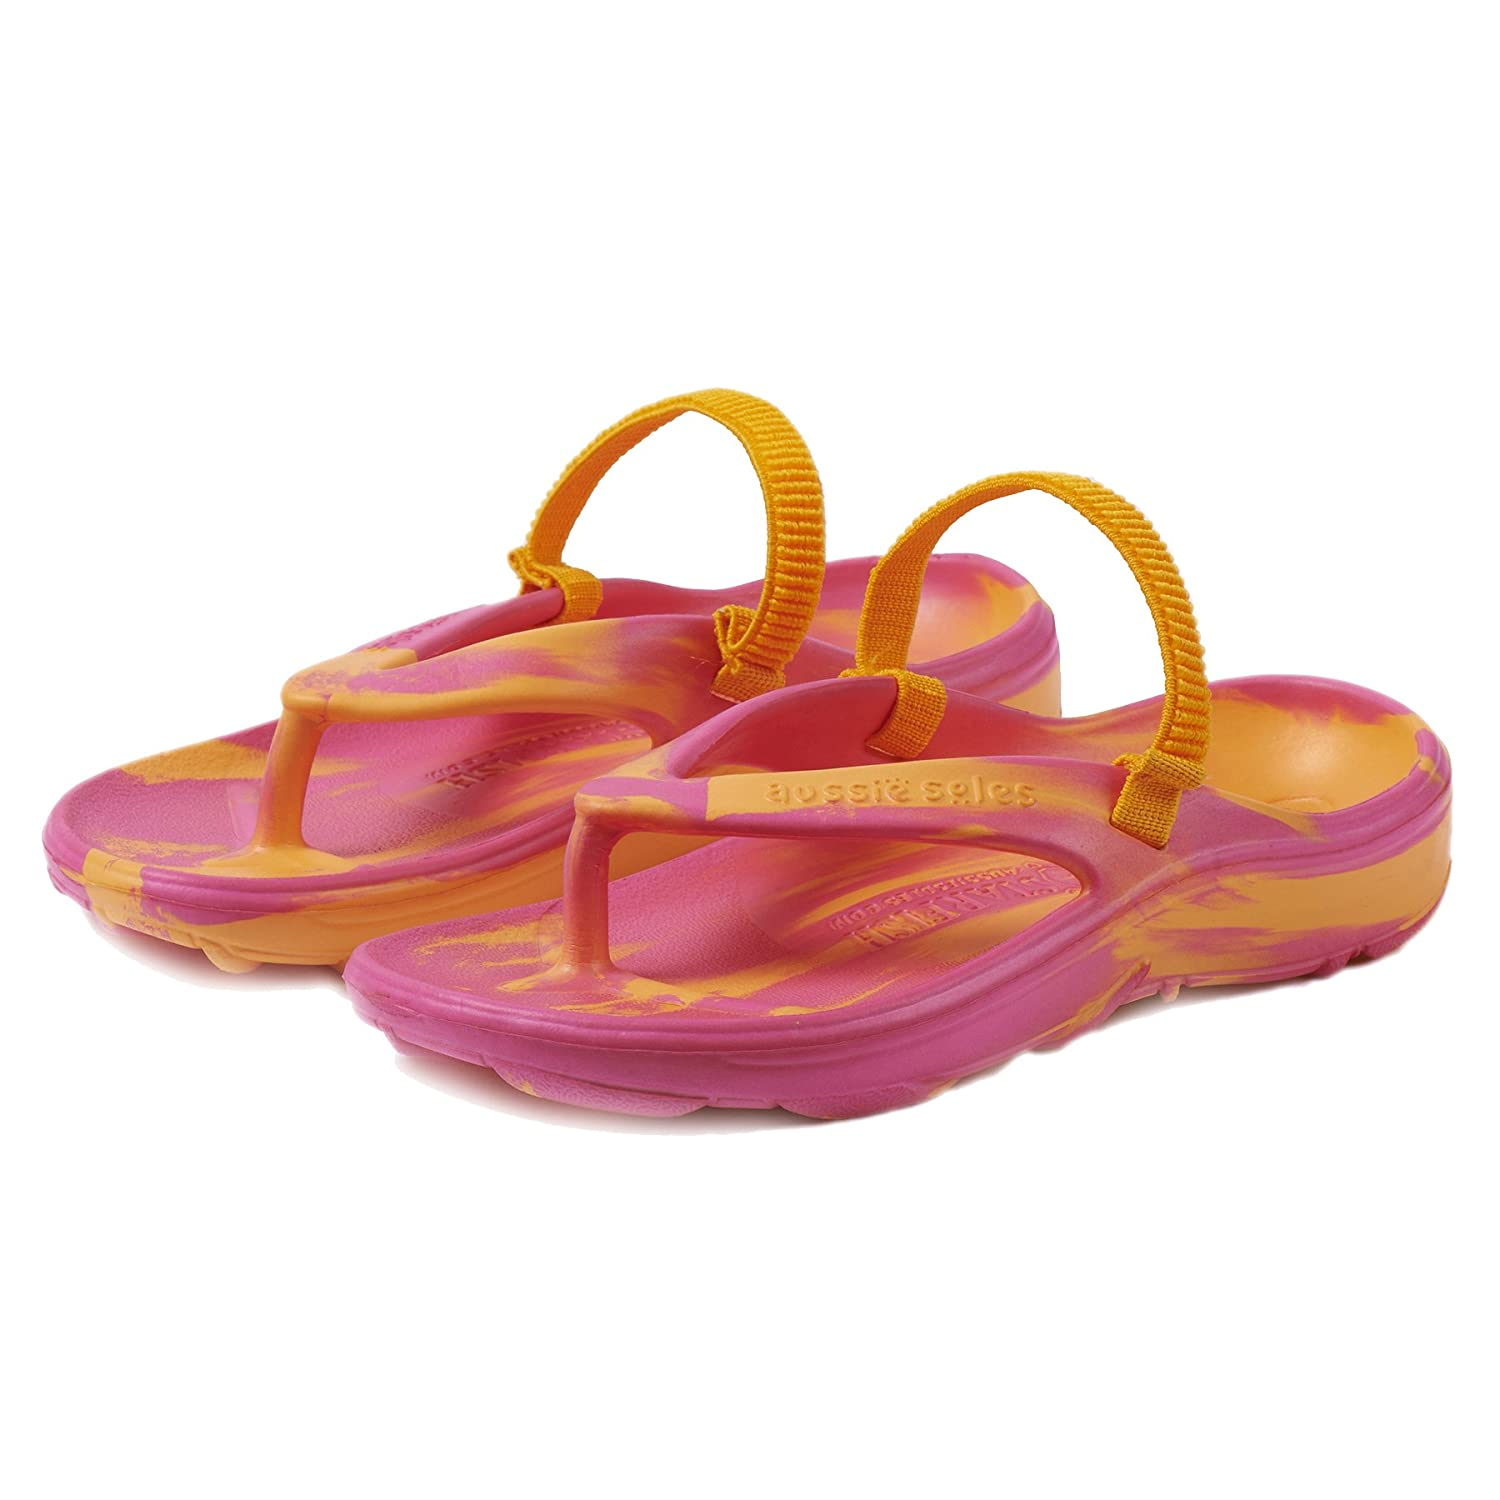 Aussie Soles Starfish Orthotic Flip Flops Toddlers Children - Unisex